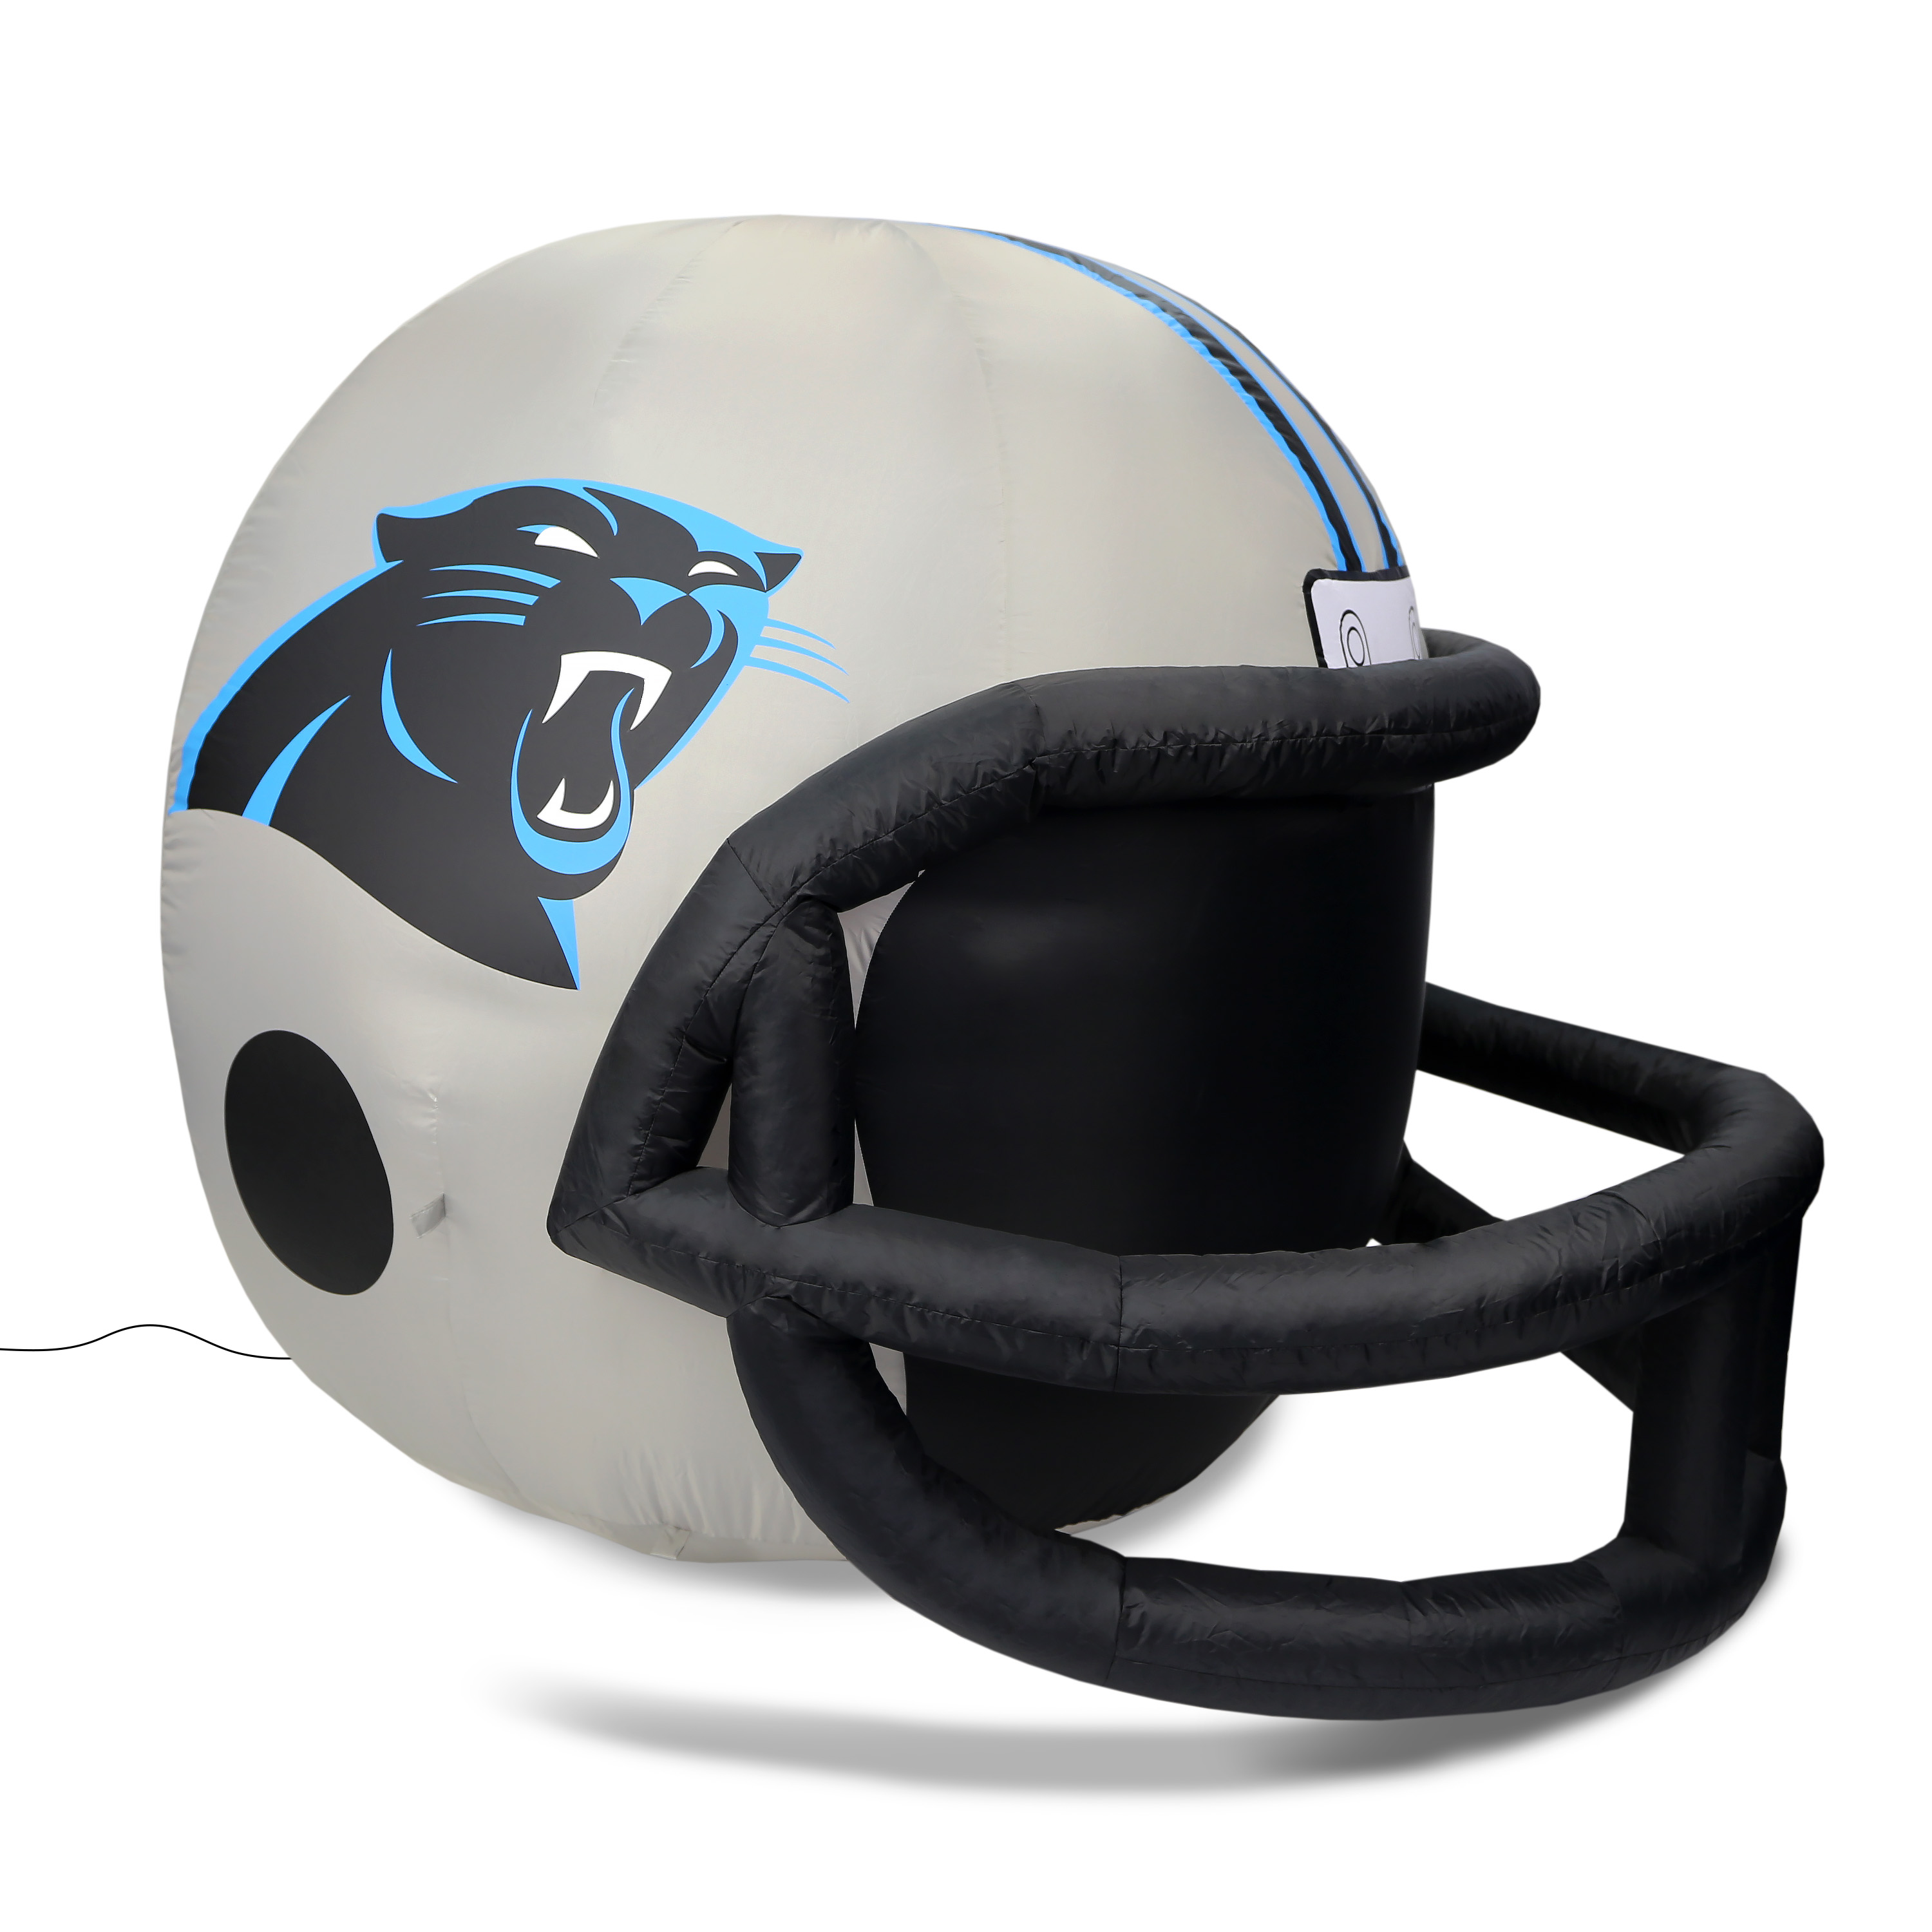 NFL Carolina Panthers Team Inflatable Lawn Helmet, Gray, One Size